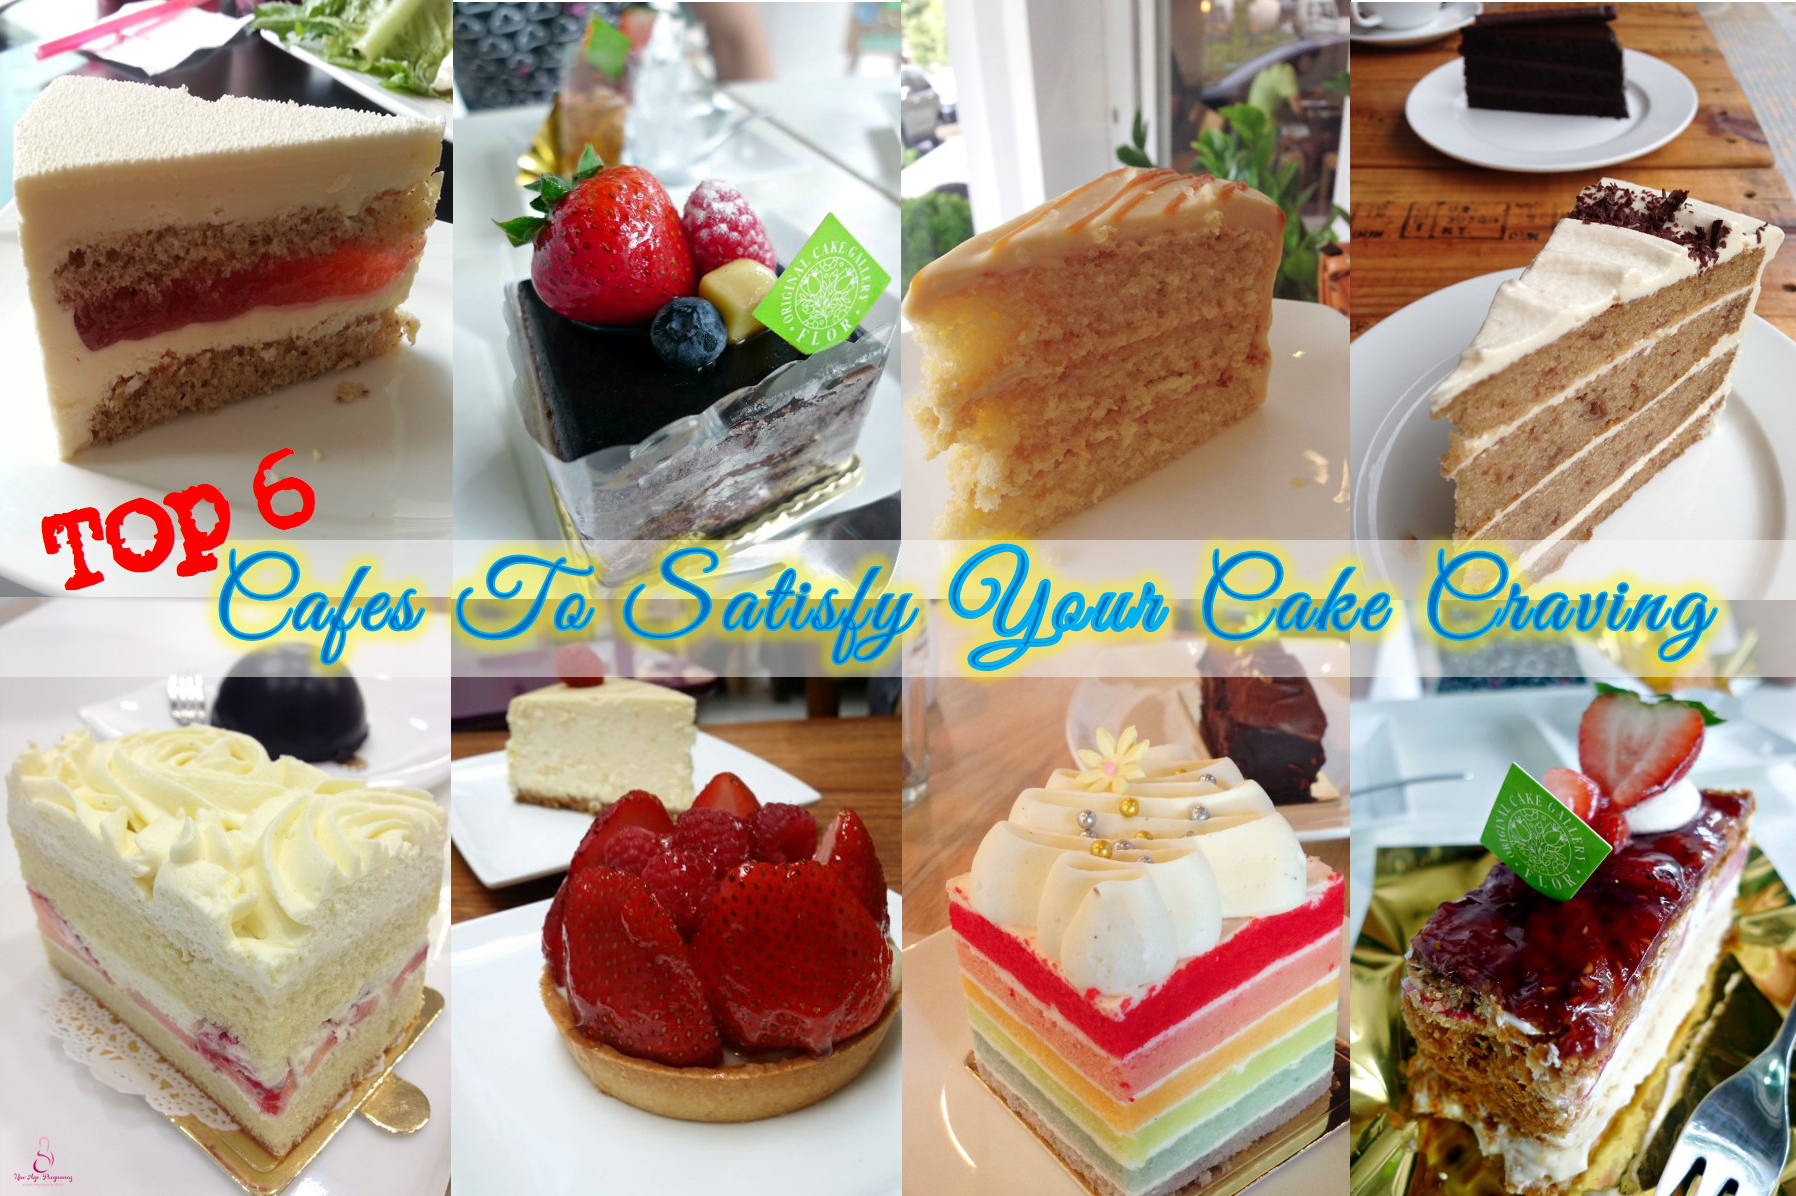 6 Best Cafes To Satisfy Your Cake Craving Pregnancy In Singapore